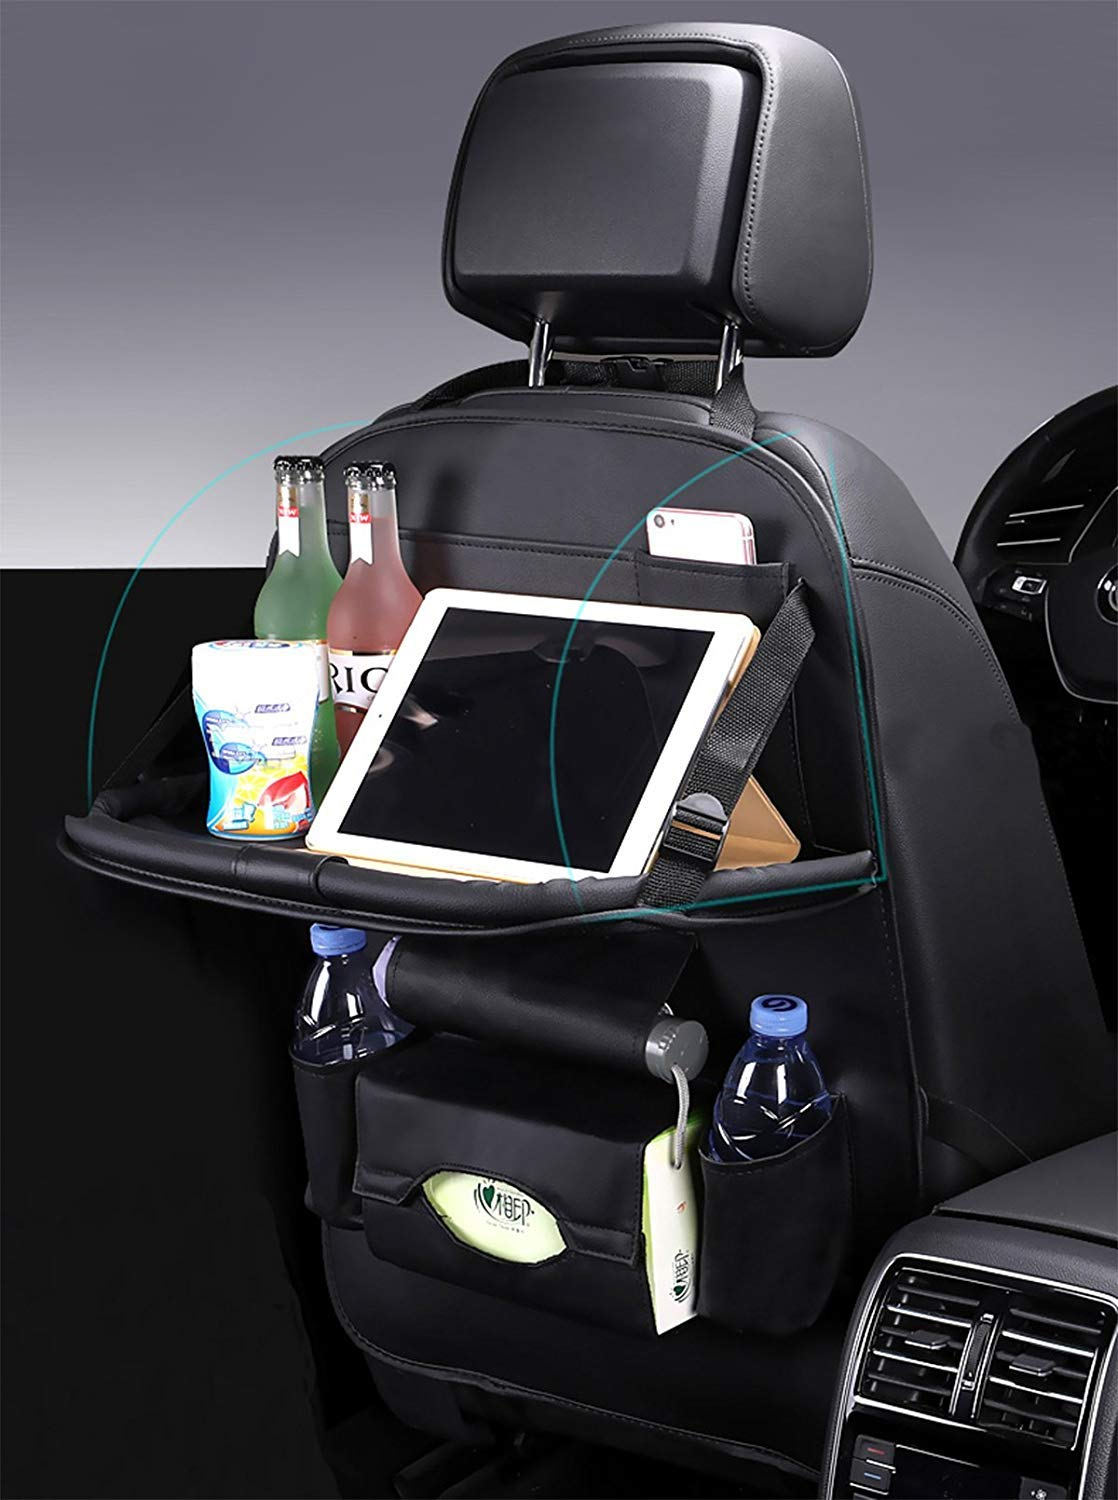 xrime Car seatback Organizer and Protector with Table Tray and iPad Holder High/quality PU Leather Automobile Seat Organizer with Foldable Dining Table Tissue Box and Water Bottle Holder Great Travel Accessory for Kids brown*1